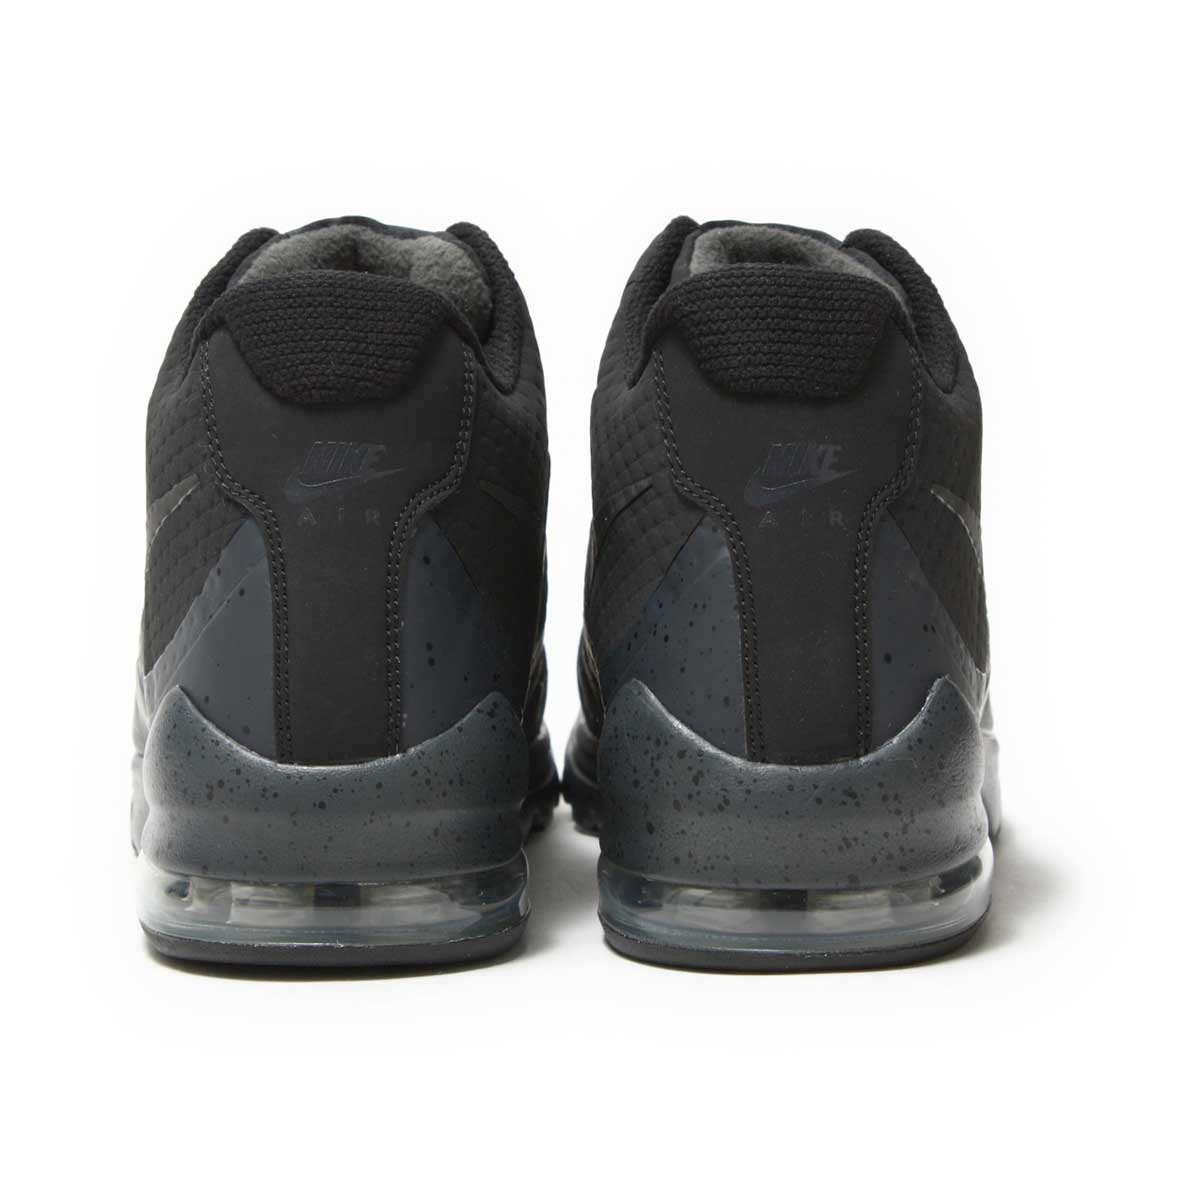 03913e3e06 ... NIKE AIR MAX INVIGOR MID (Kie Ney AMAX in bigarfish mid) BLACKBLACK ...